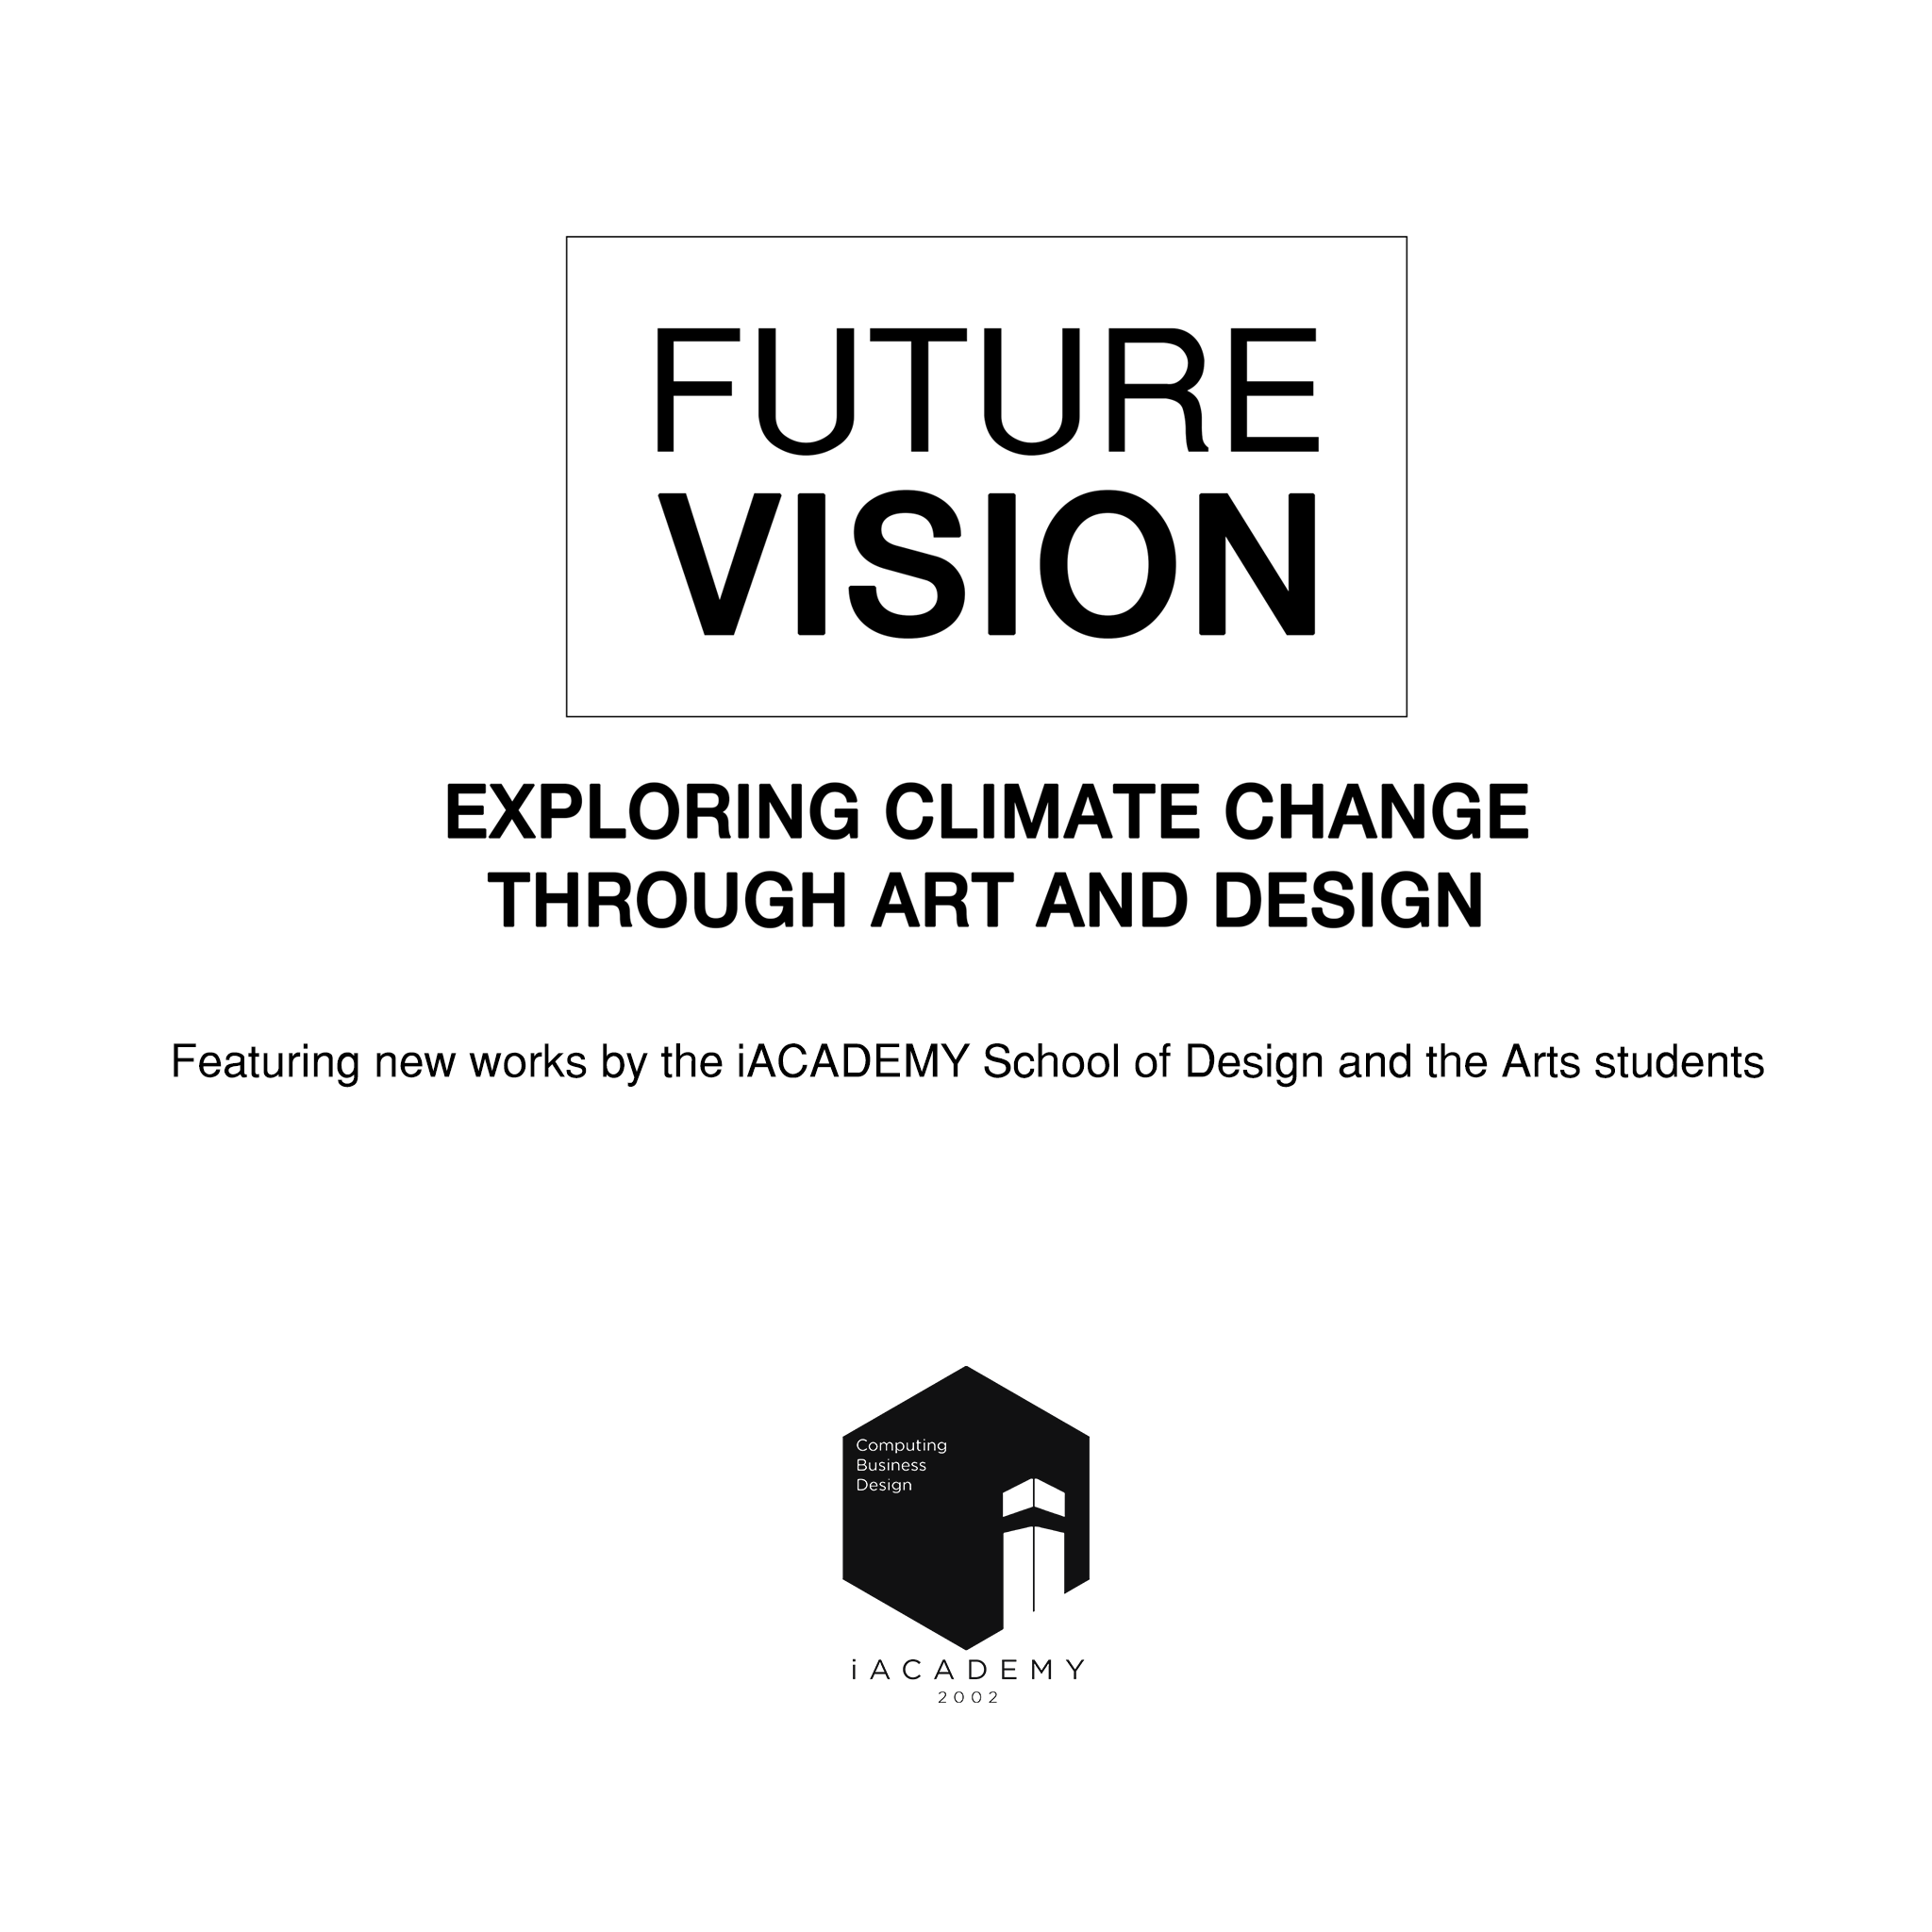 Future Vision: a commentary on climate change through art